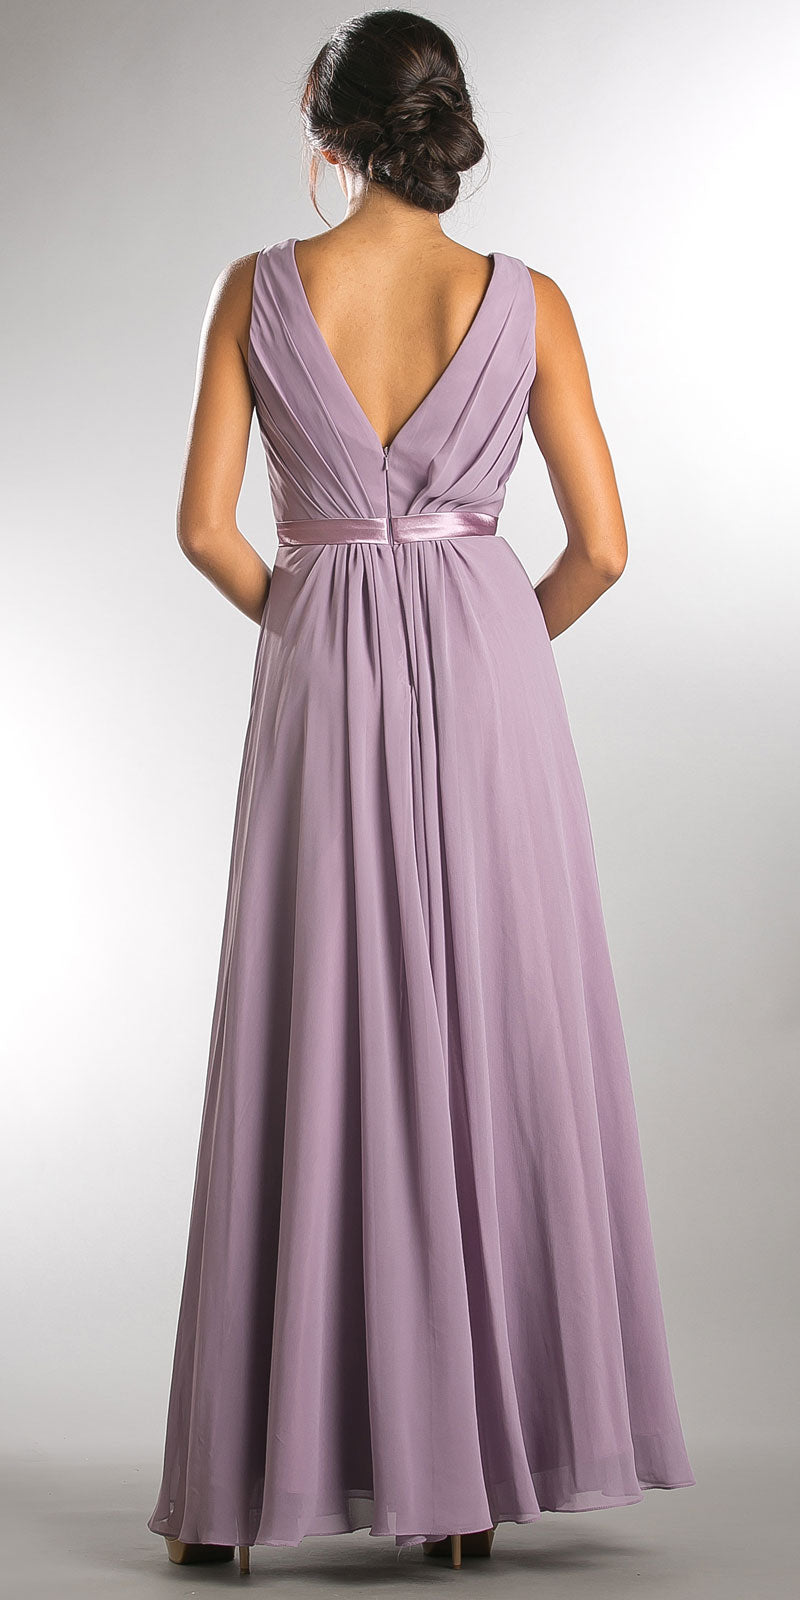 Image of V-neck Sleeveless Ruched Bodice Long Bridesmaid Dress back in Lavender